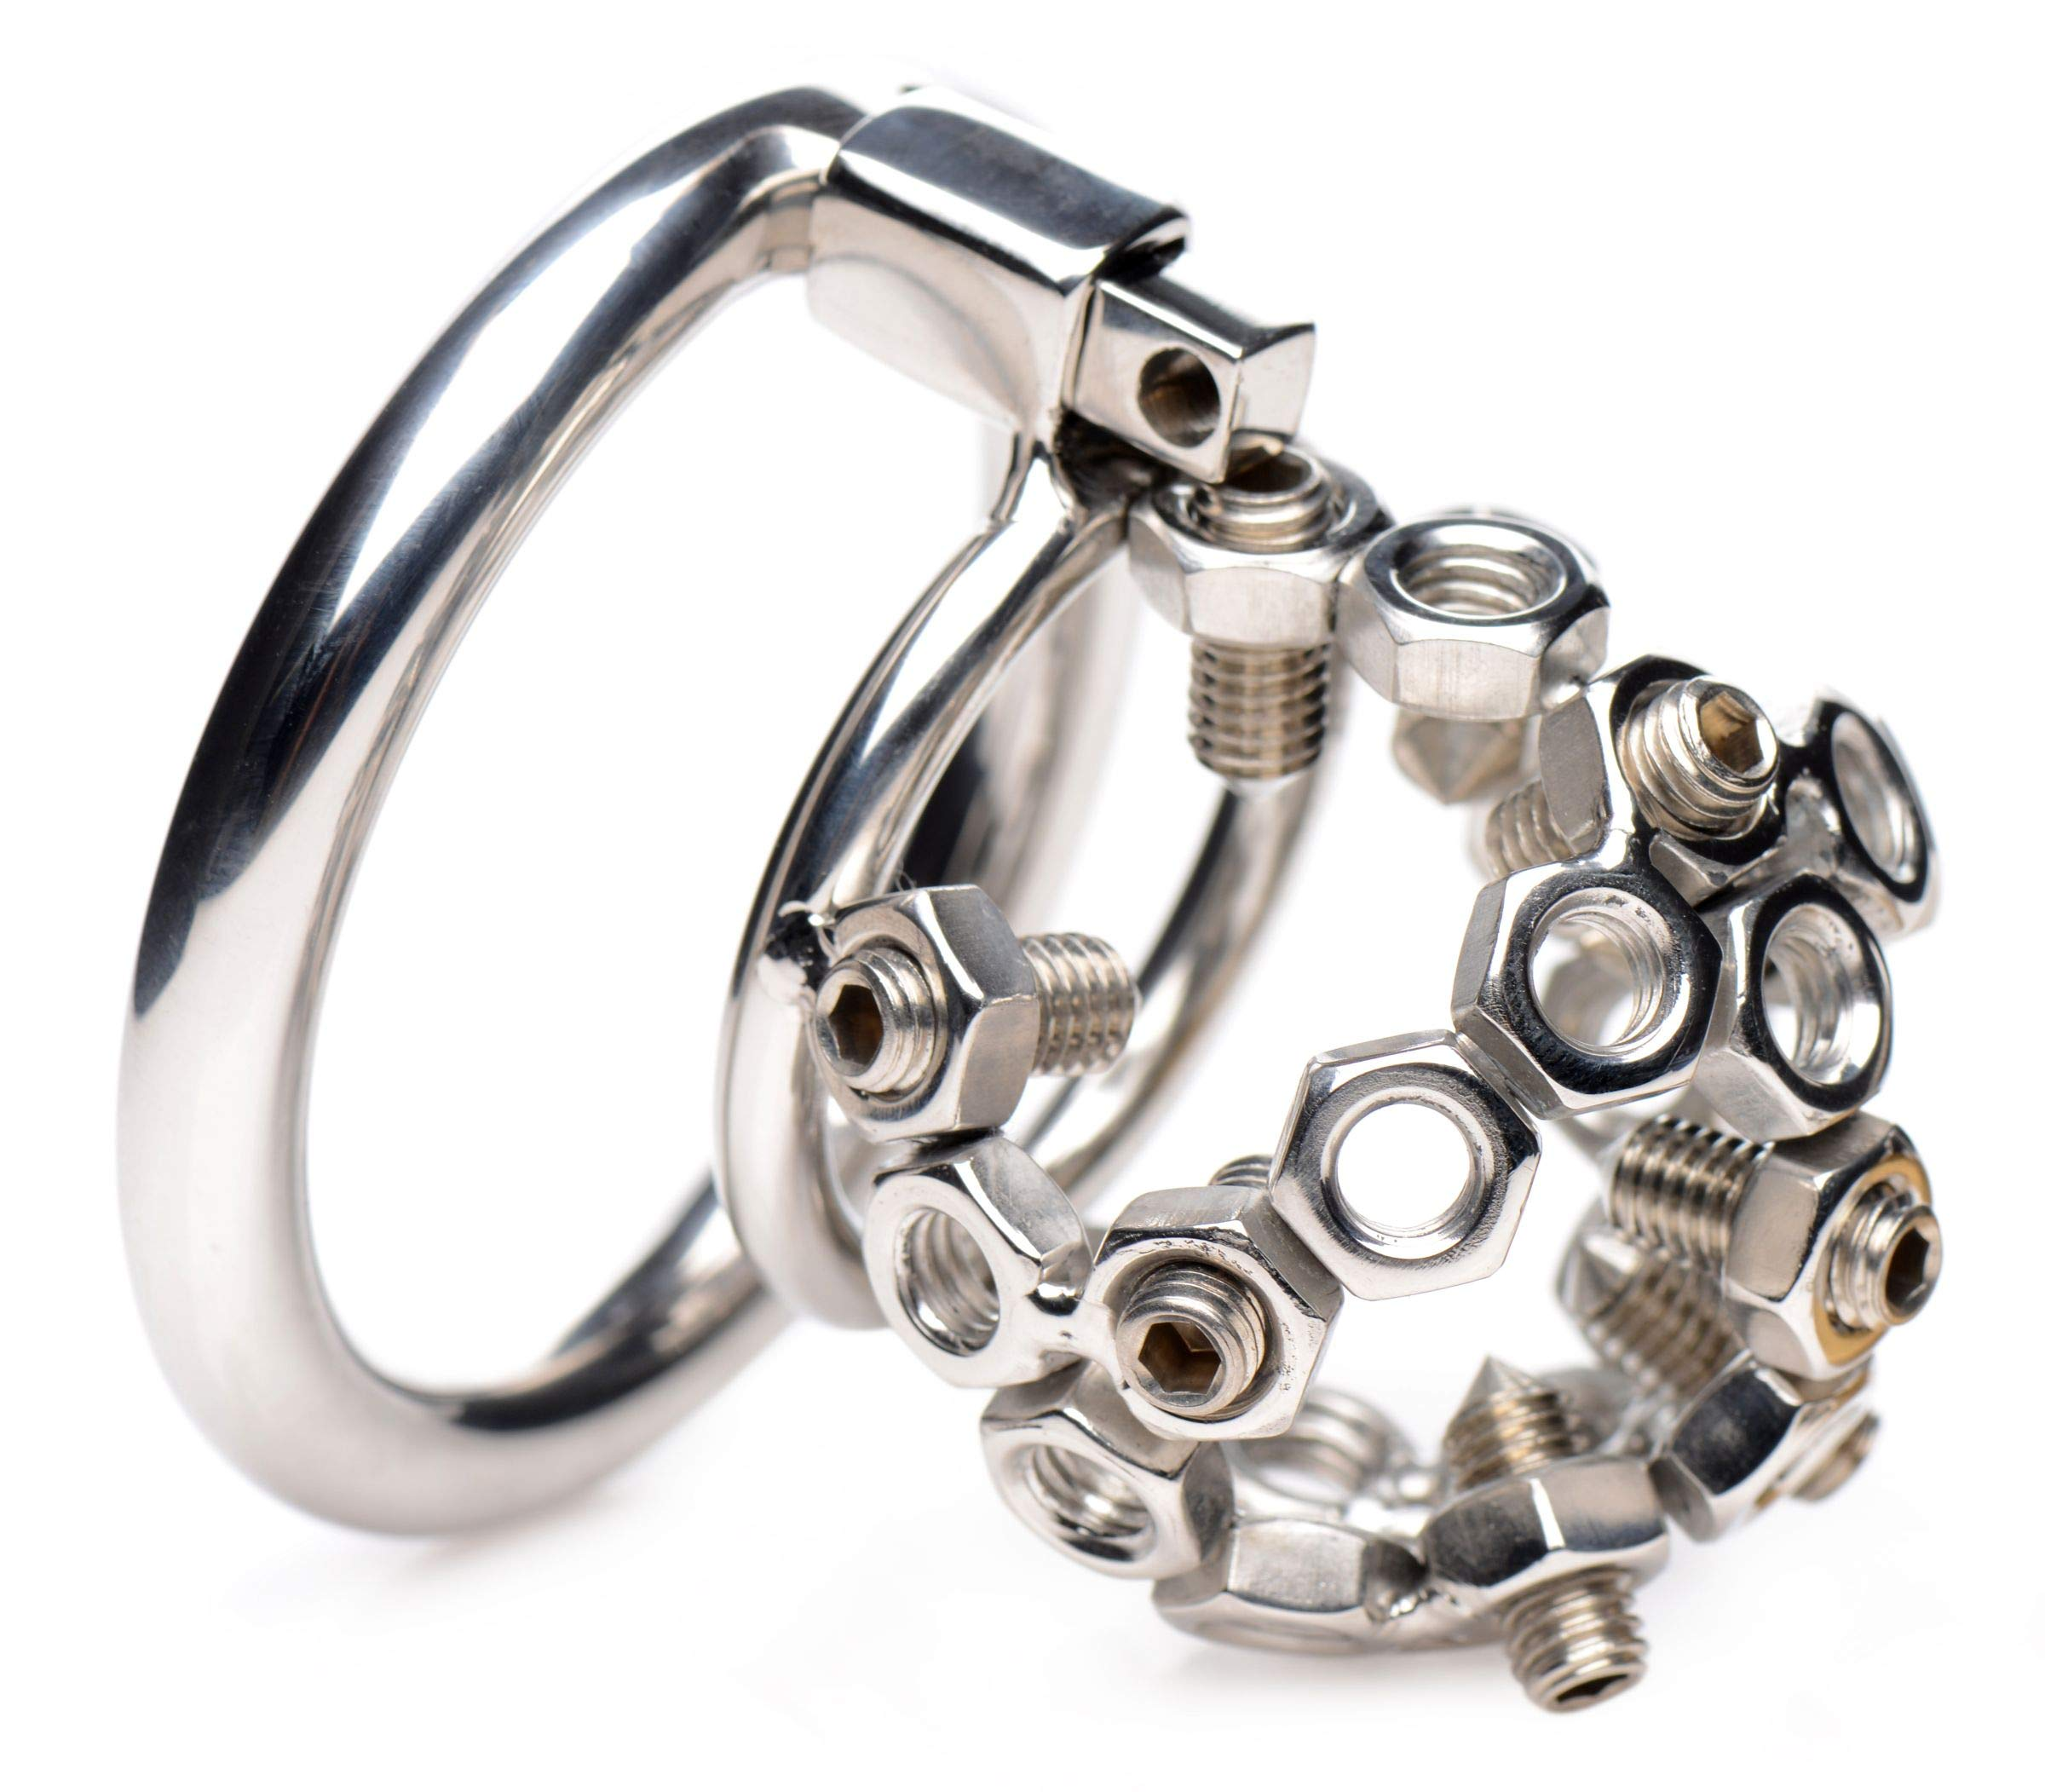 Master Series Bolted Stainless Steel Chastity Cage with Spikes, 1 Count by Master Series